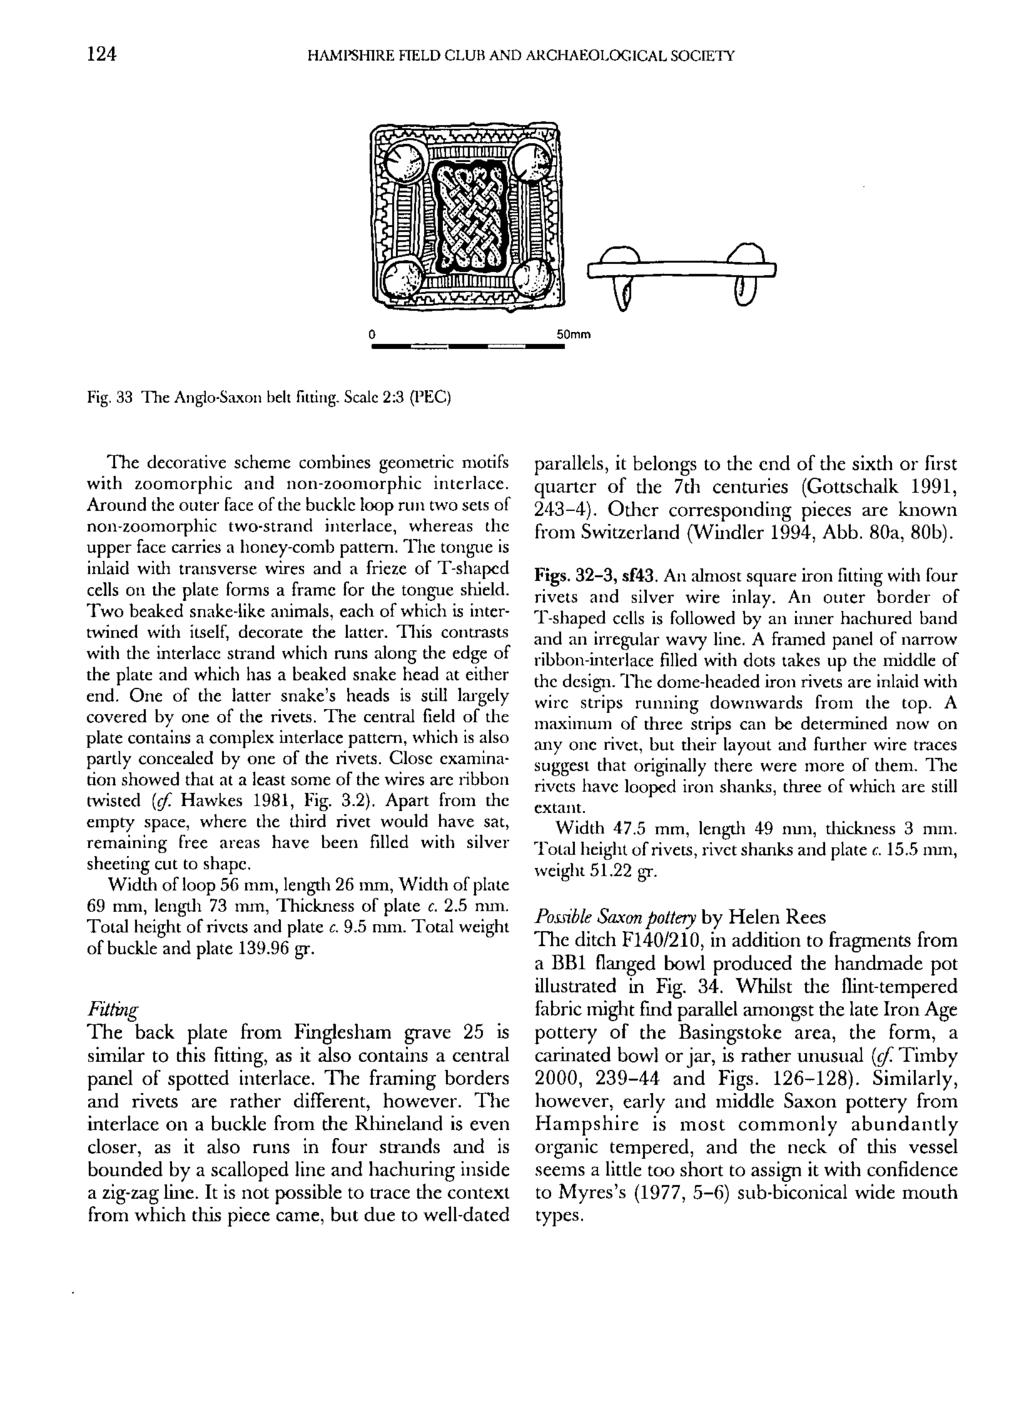 124 HAMPSHIRE FIELD CLUB AND ARCHAEOLOGICAL SOCIETY ZZL m. B ^r v Fig. 33 The Anglo-Saxon beltfilling.